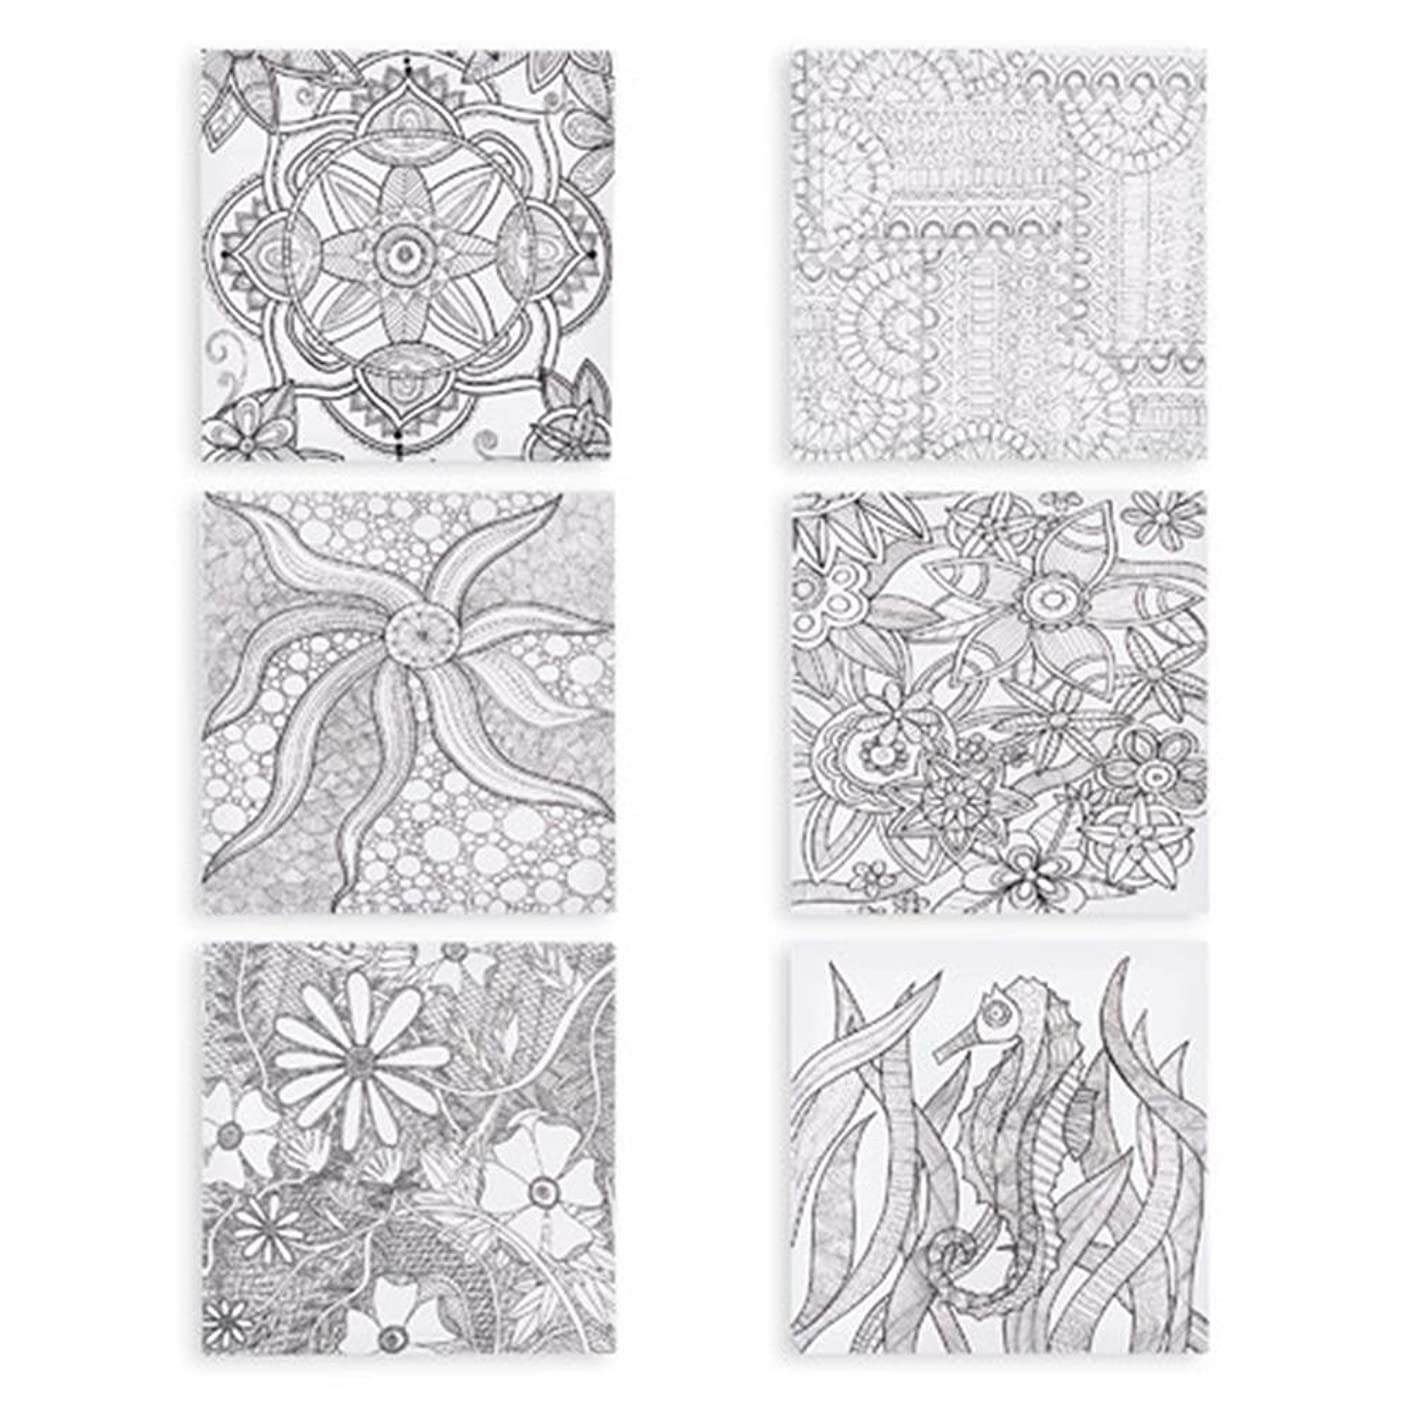 DARICE 30009370 Coloring Adults, 12 x 12 inches Canvas Art, Multicolor, Assorted Print, Single Unit